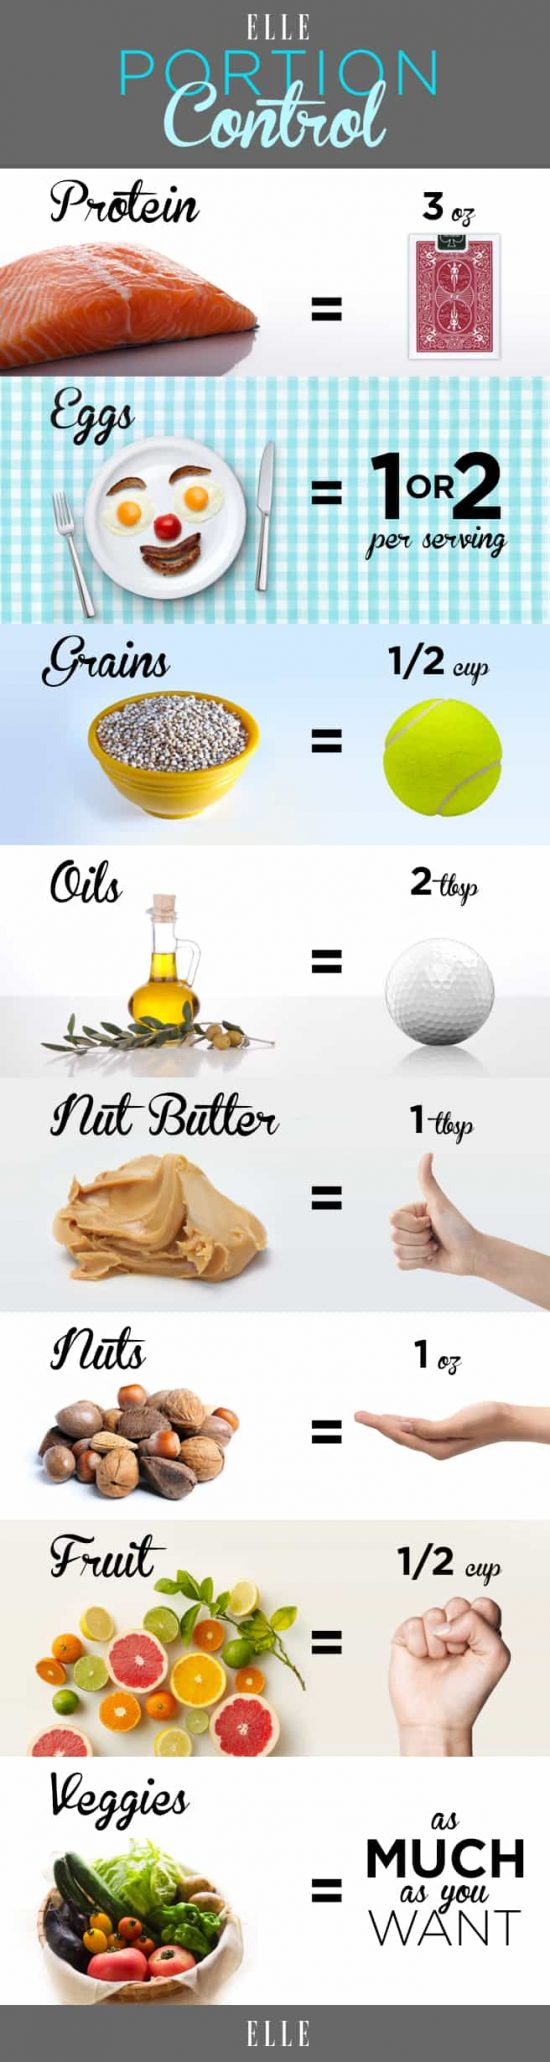 Portion Control Infographic